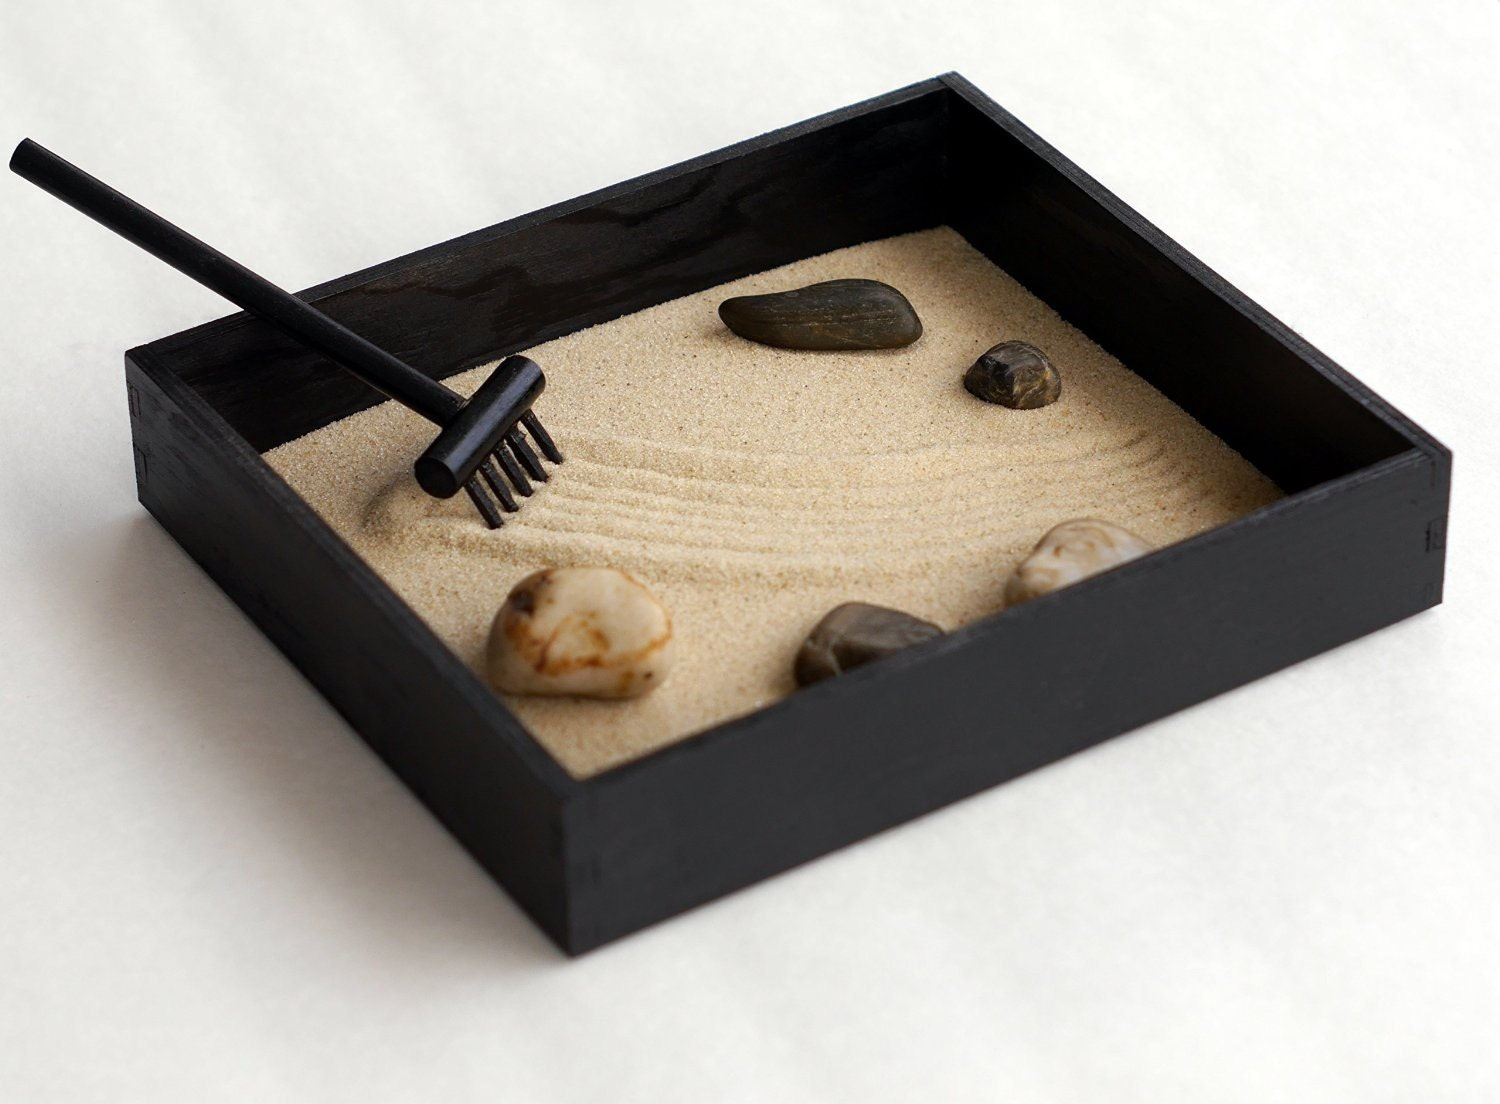 Office Zen Garden Zen Gifts Black Decor Mini Zen Garden Office Gifts For Boss